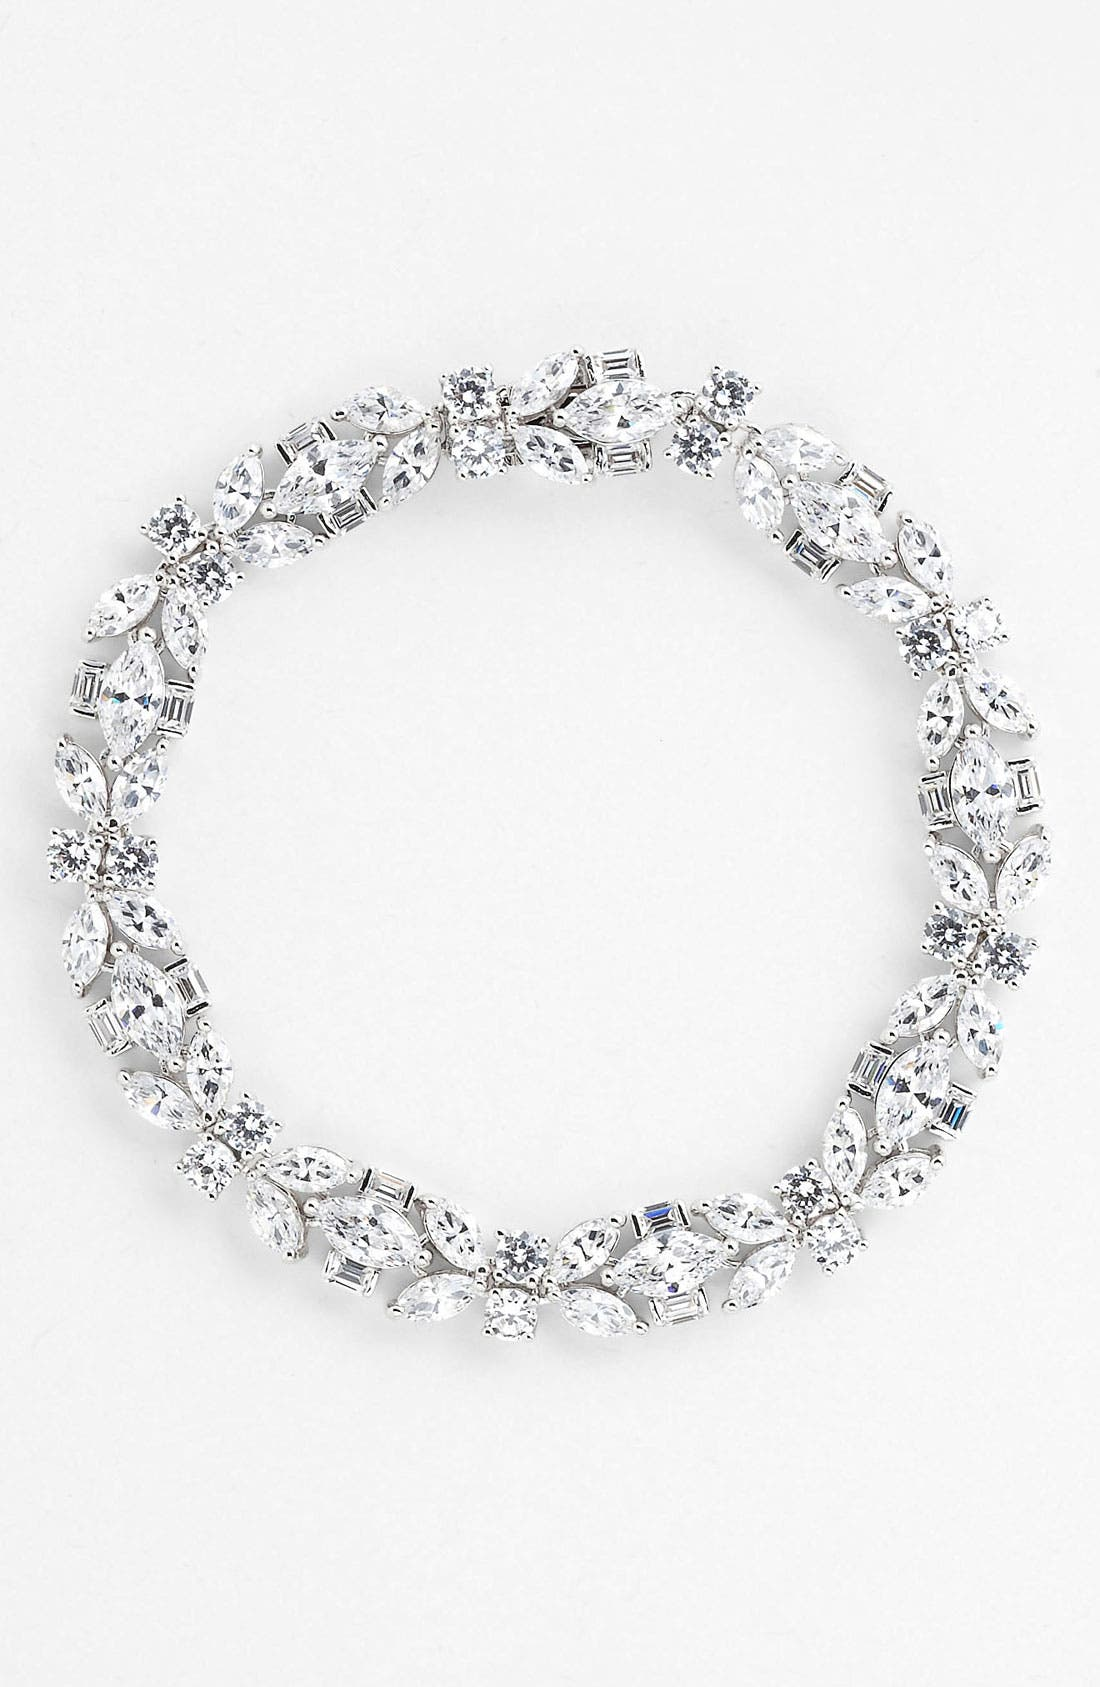 Alternate Image 1 Selected - Nadri Cubic Zirconia Cluster Line Bracelet (Nordstrom Exclusive)